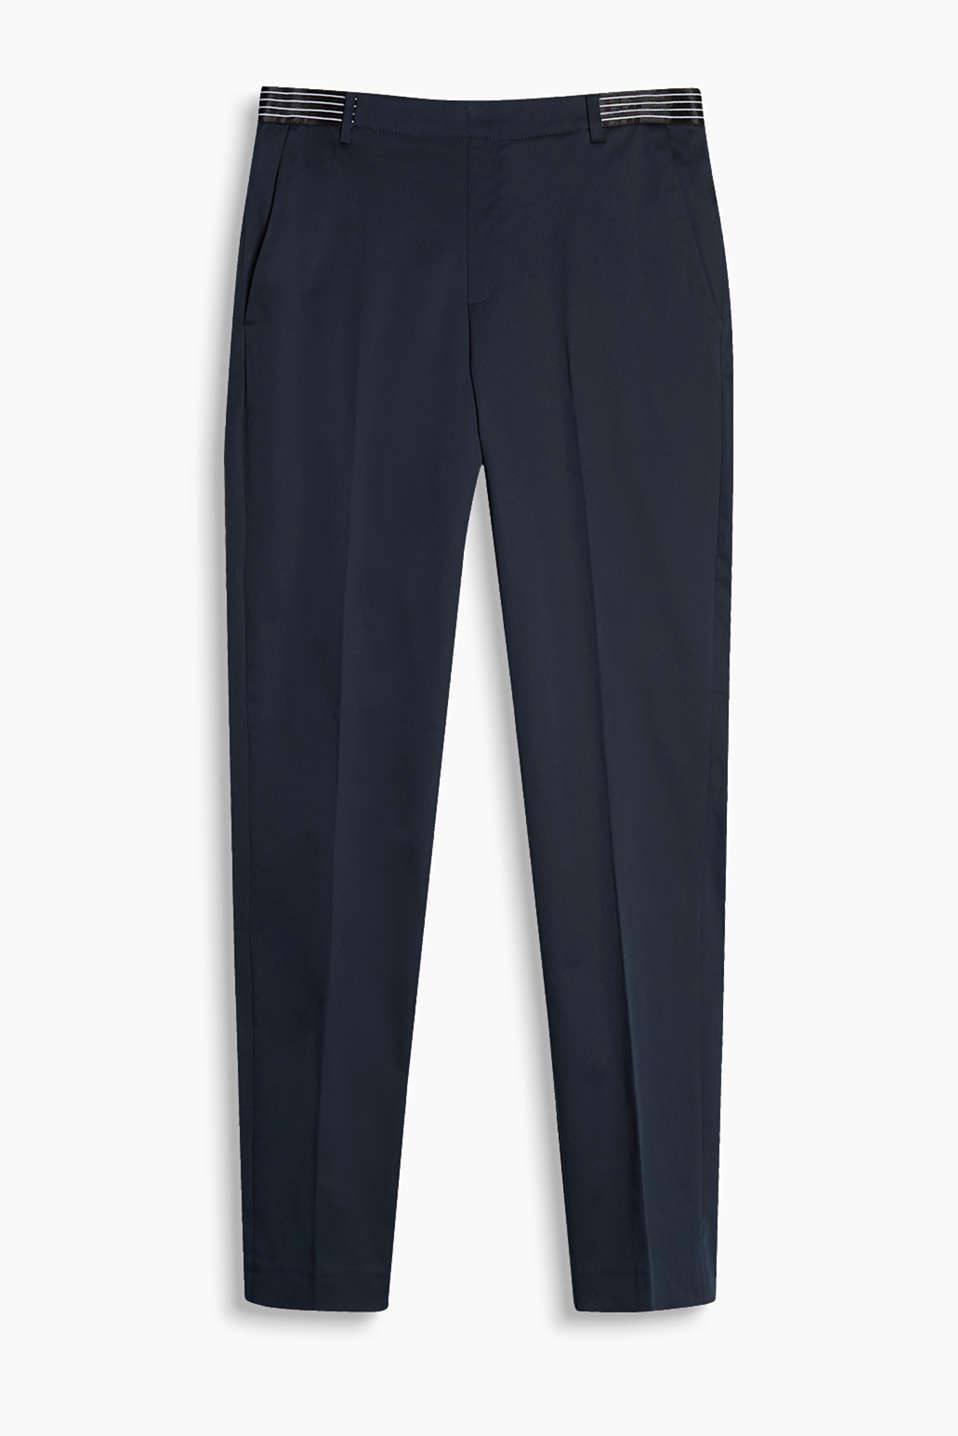 Trousers with a style mix: with an elasticated waistband and pressed pleats